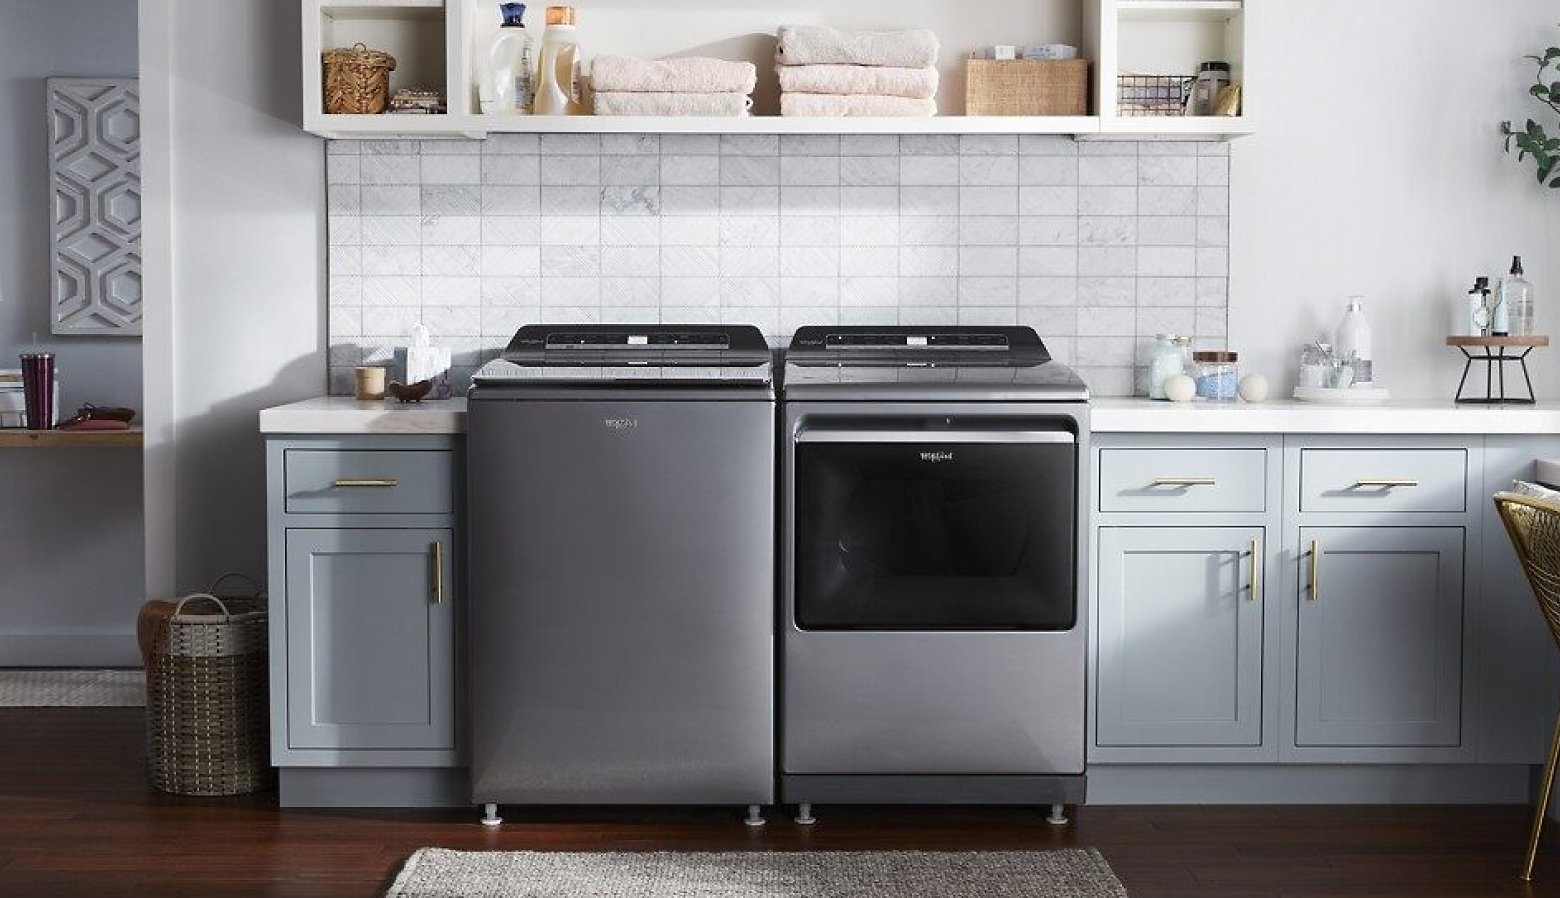 Top load laundry pair in a bright laundry room